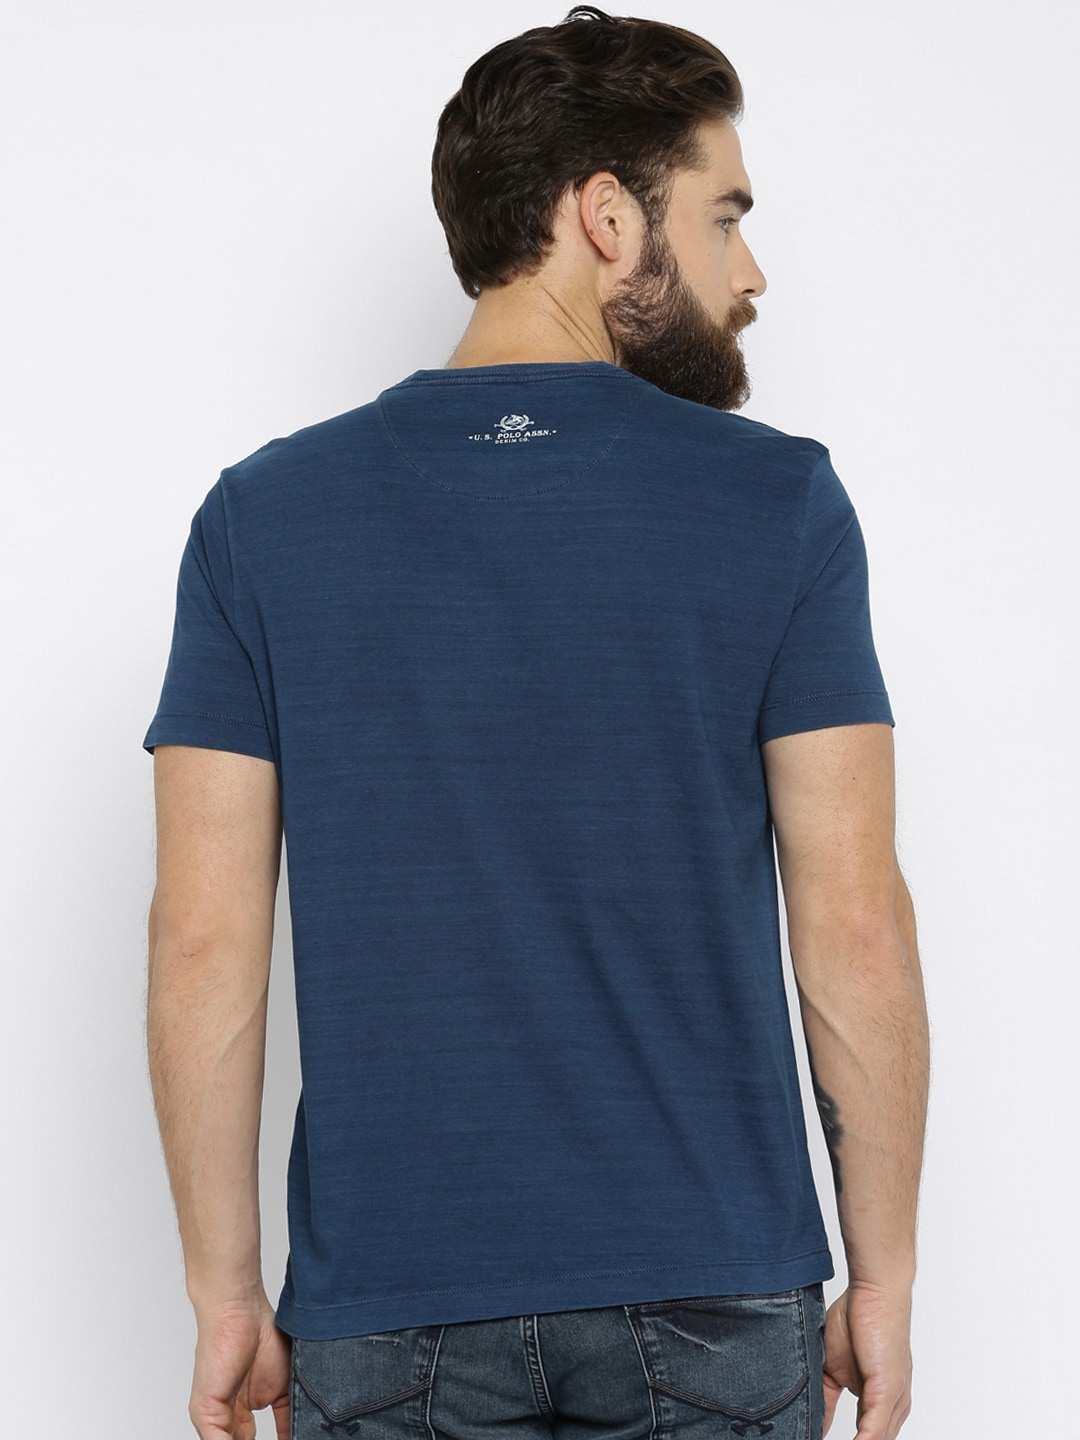 260cab3b Us Polo T Shirts Jabong – EDGE Engineering and Consulting Limited